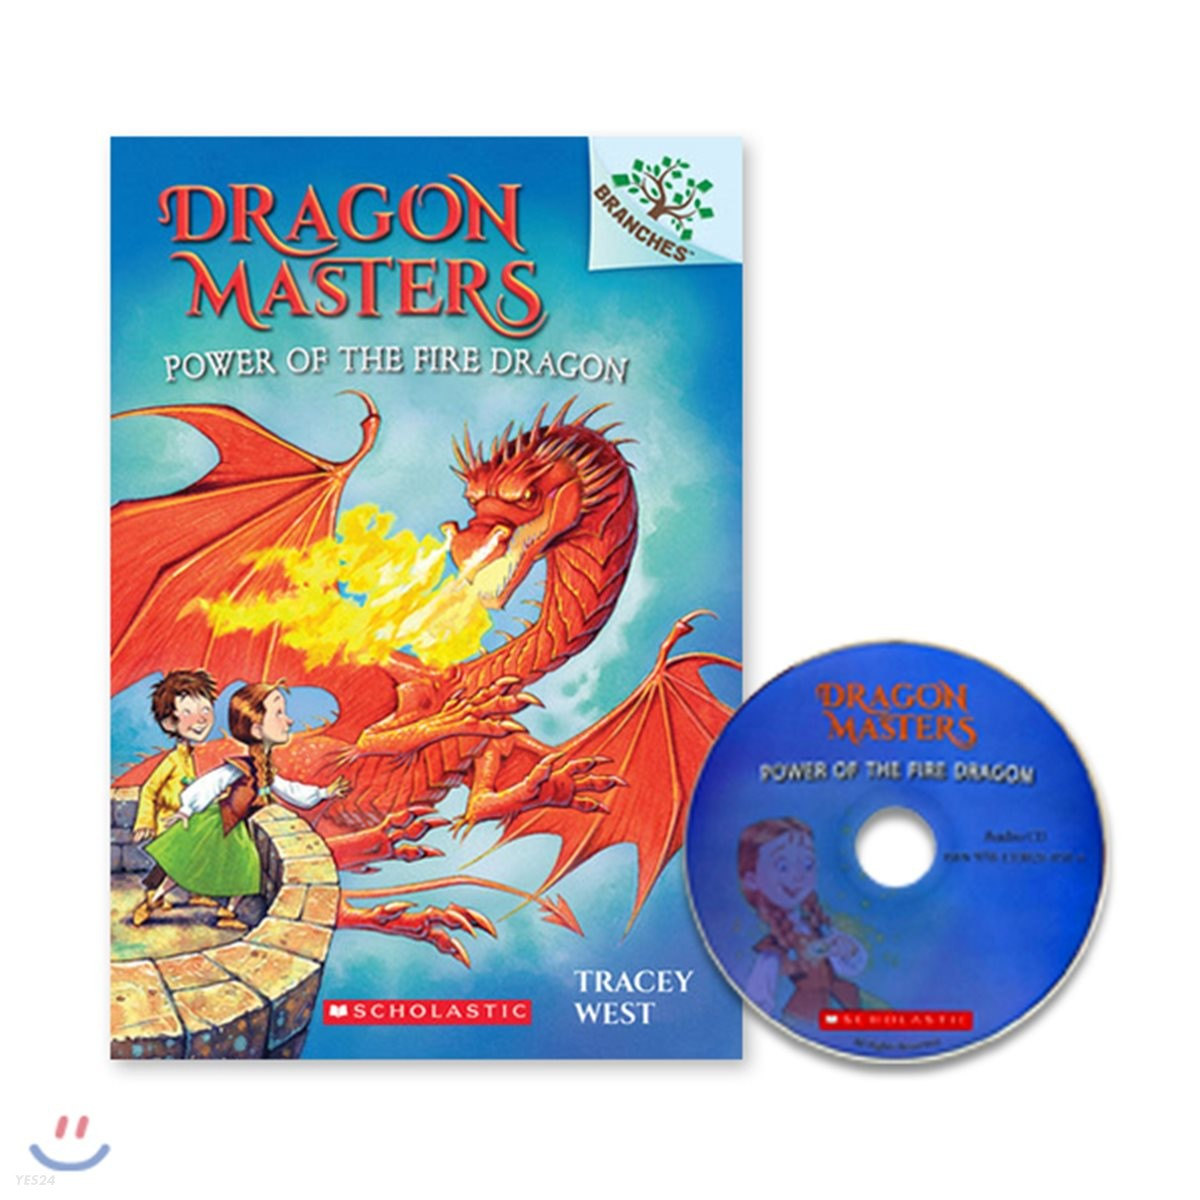 Dragon Masters #4 : Power of the Fire Dragon (Book & CD)